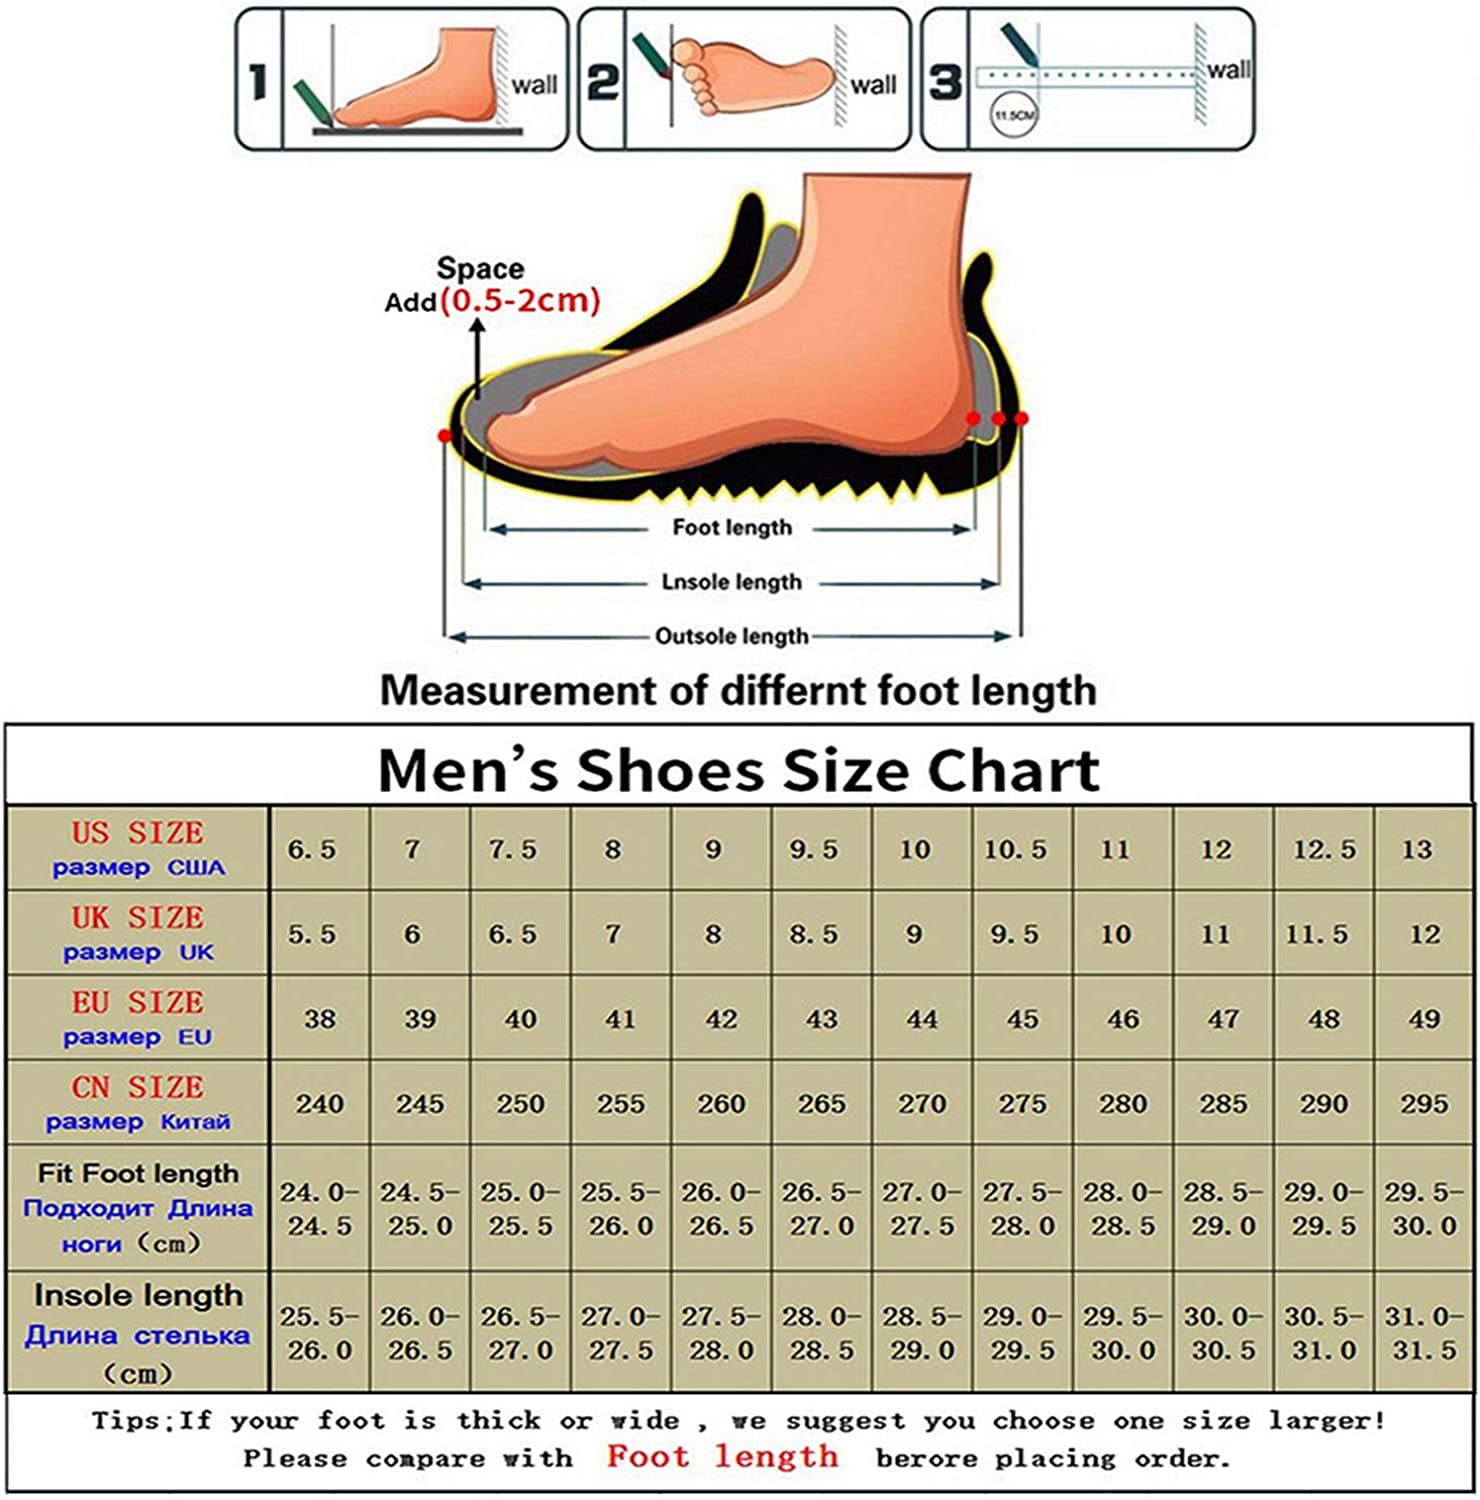 Genuine Leather Men Summer Sandals Breathable Casual Shoes Man Closed Toe Beach Shoes Rubber Sole Mens Sandals,Brown,6.5